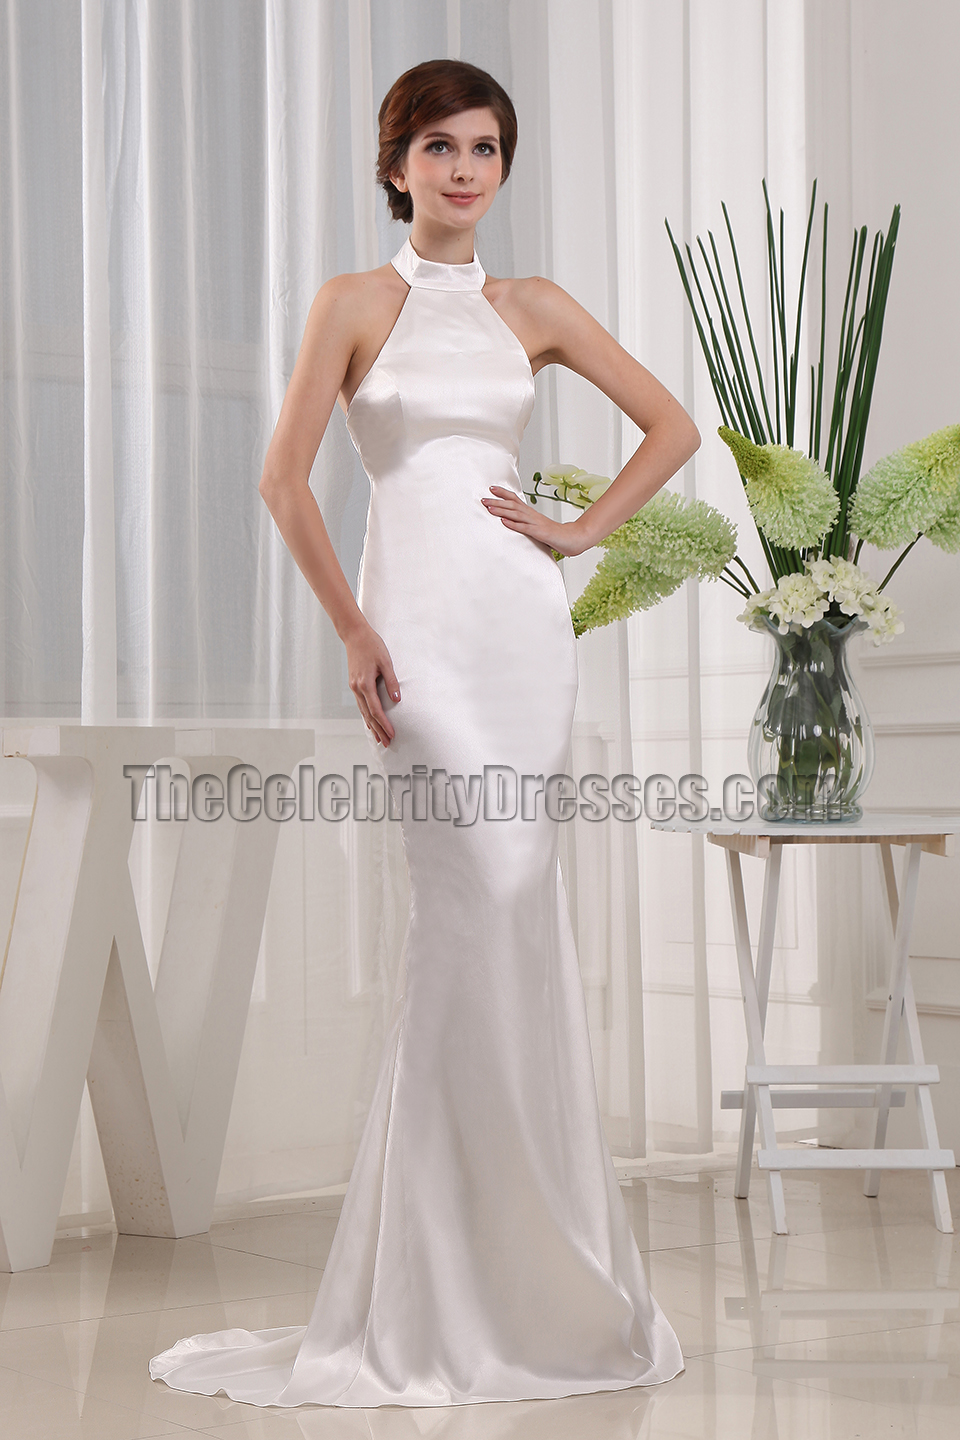 Simple Mermaid Halter Wedding Dress Bridal Gown Thecelebritydresses